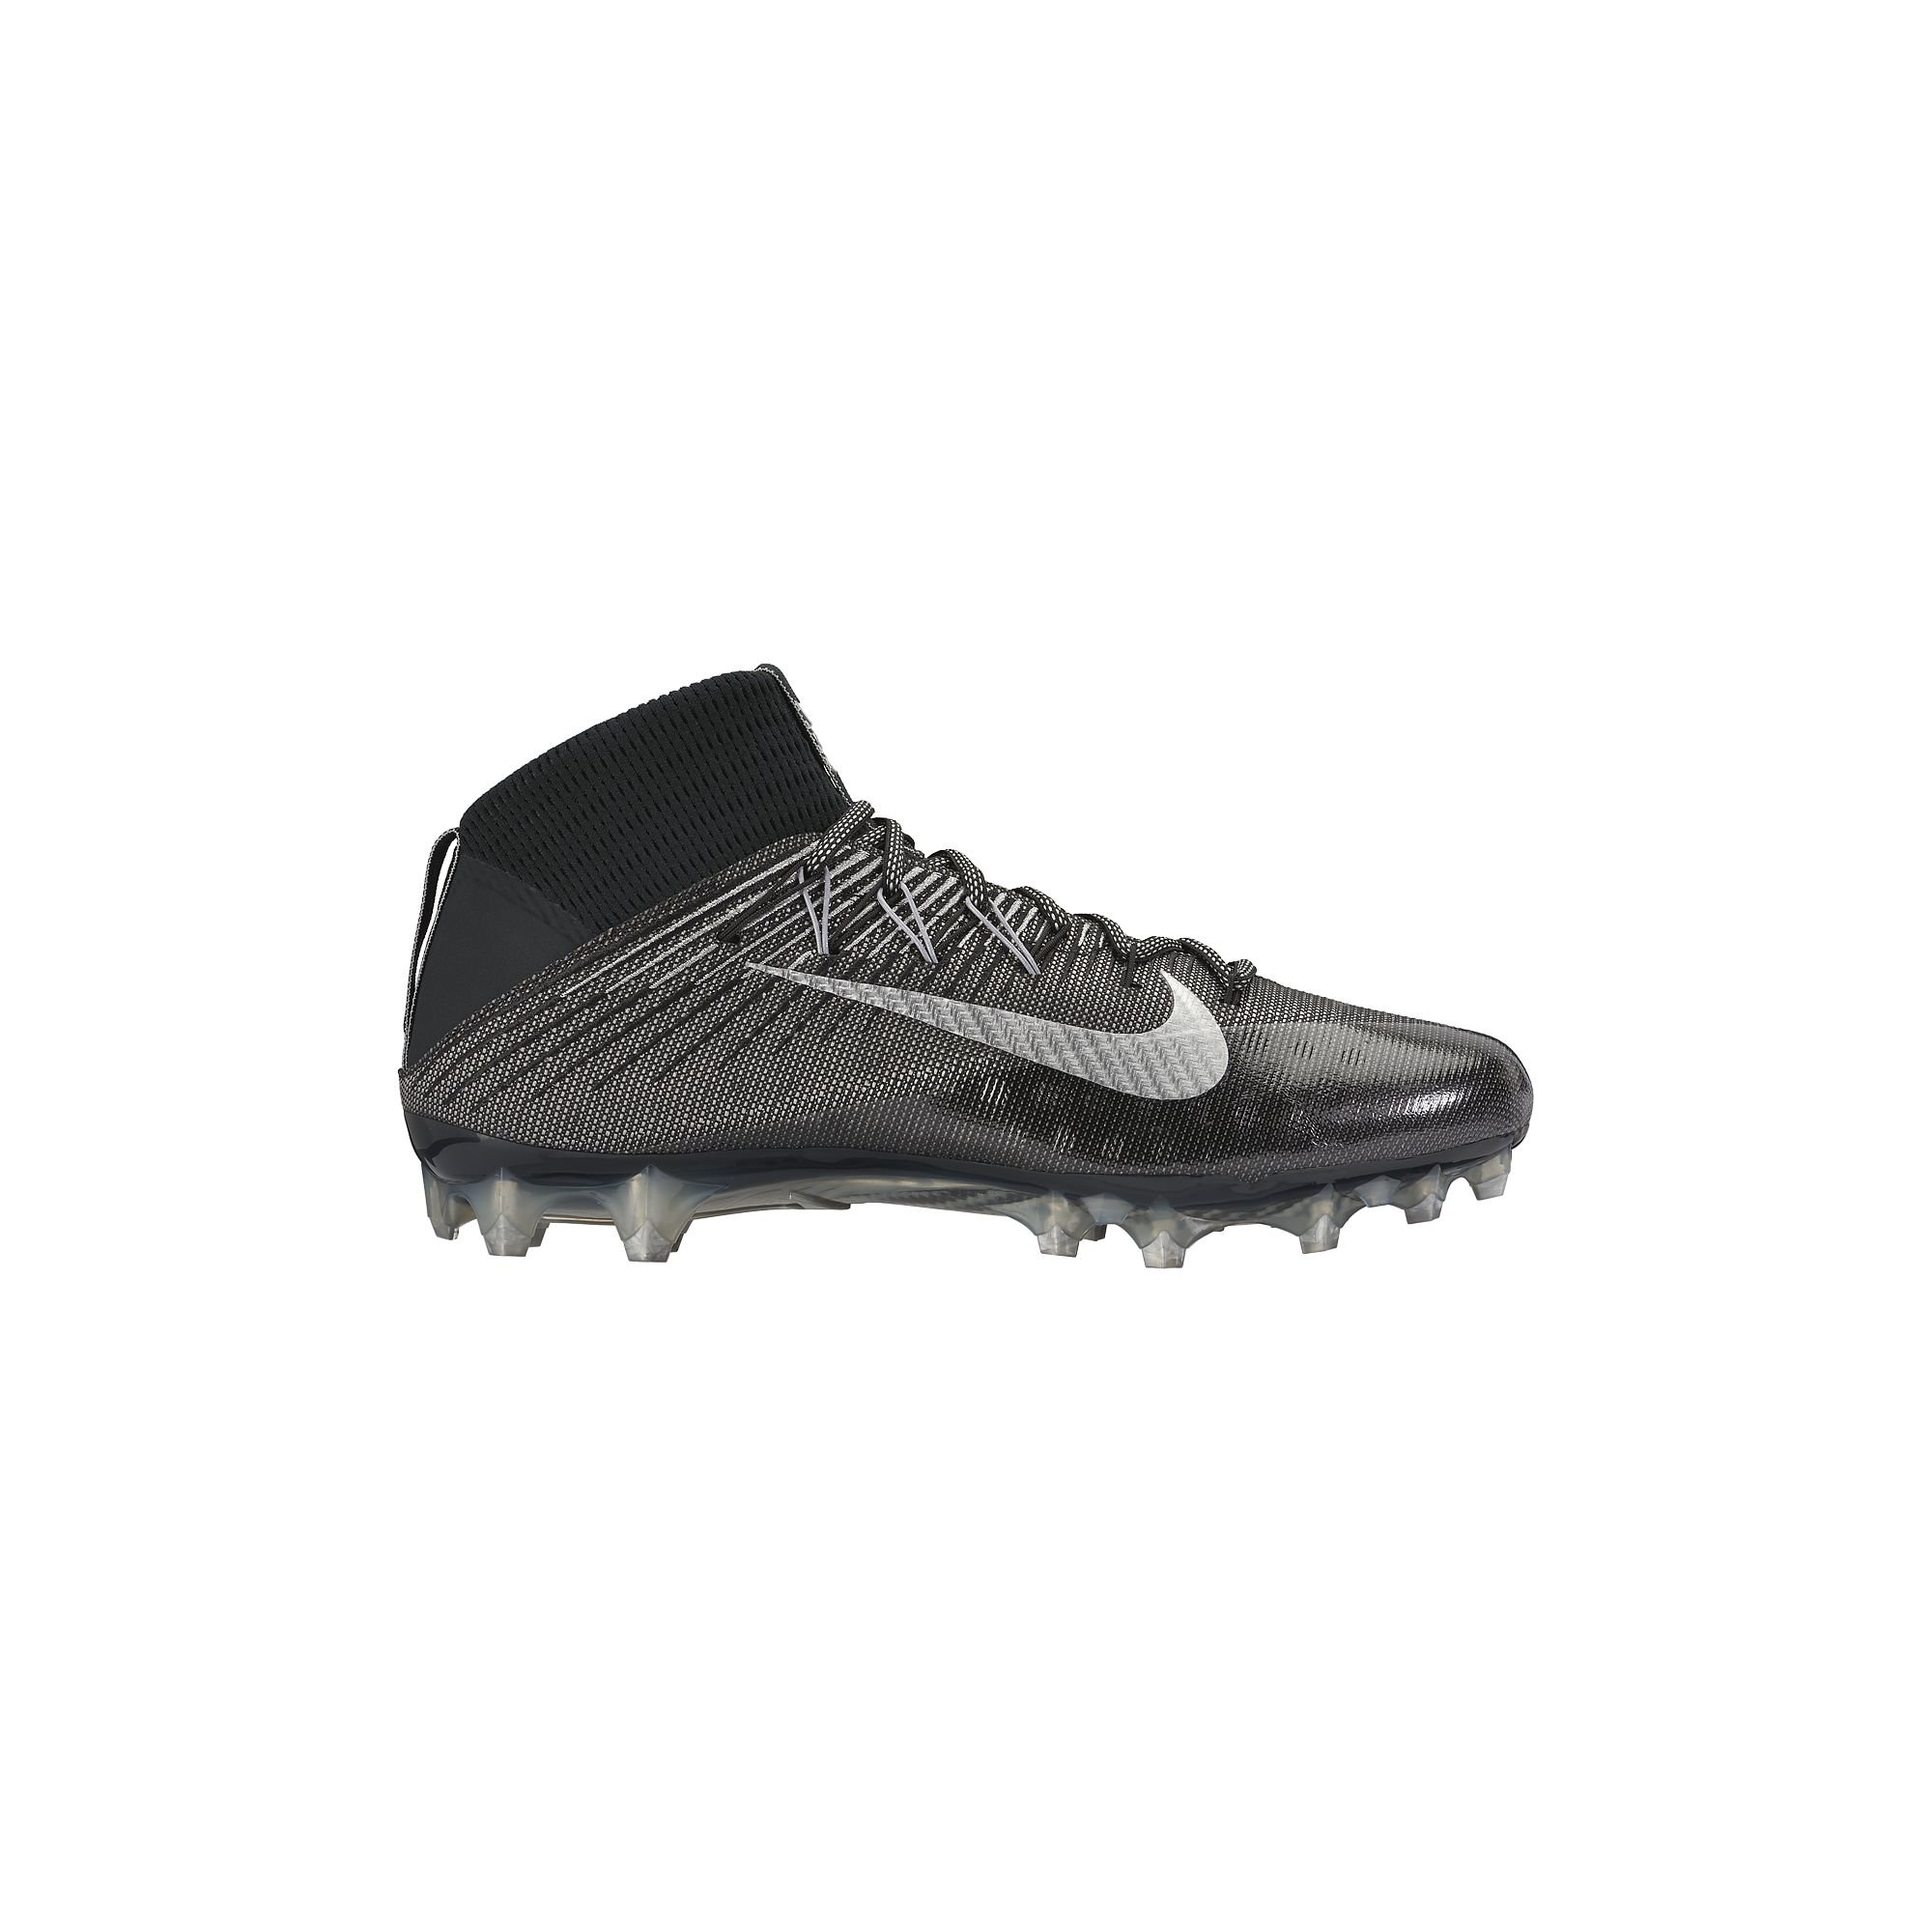 NIKE Men's Vapor Untouchable 2 Football Cleat Black/Anthracite/Metallic Silver Size 9.5 M US by NIKE